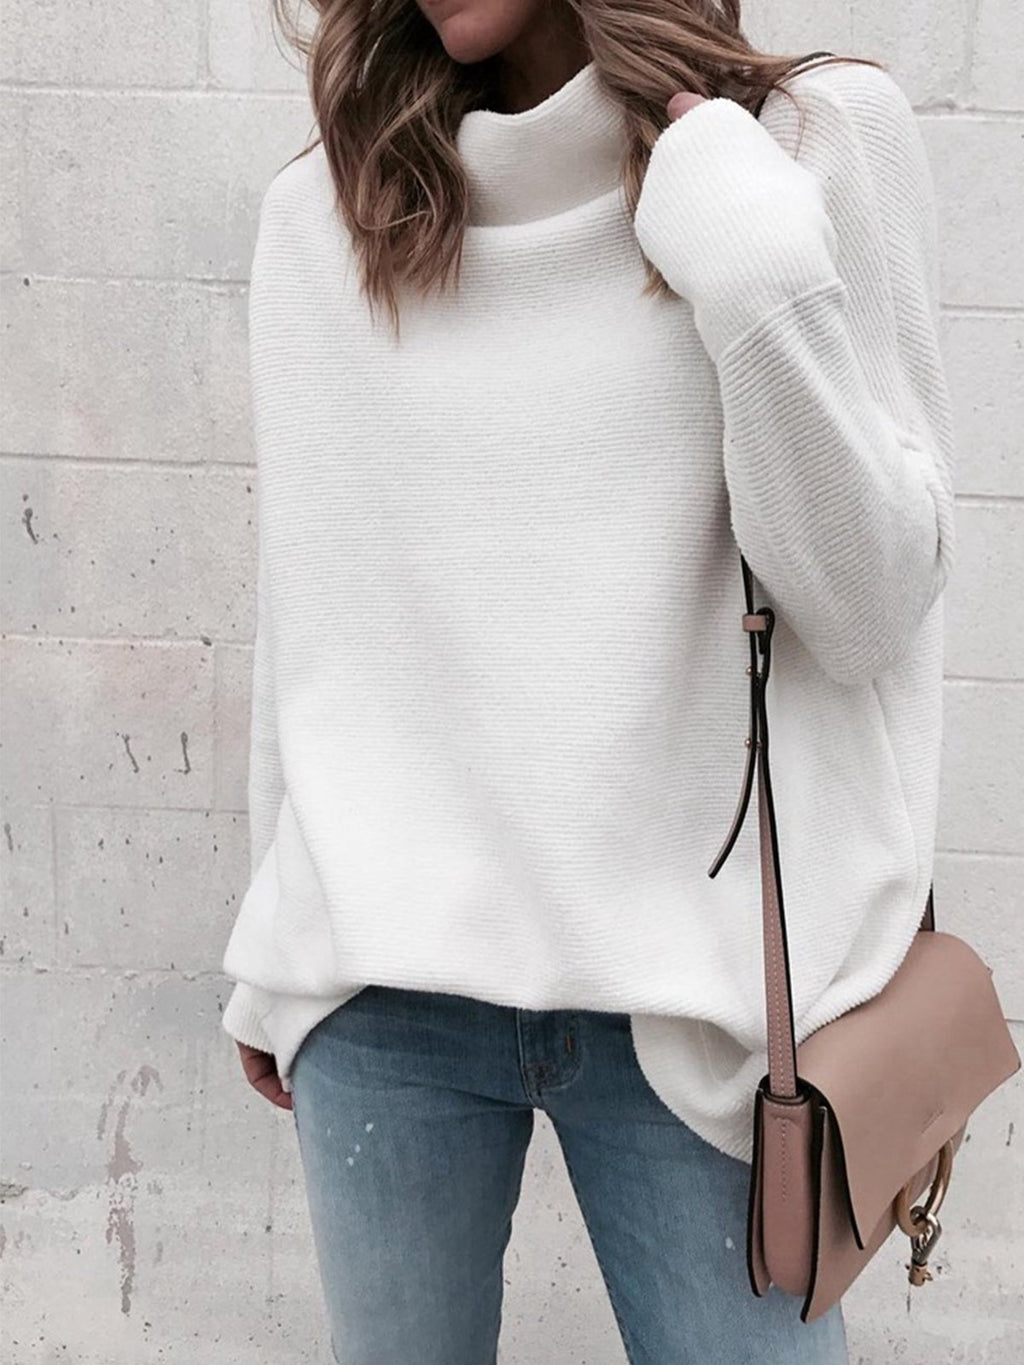 Pure Turtle Neck Long Sleeve Warm Knitwear Women Blouse